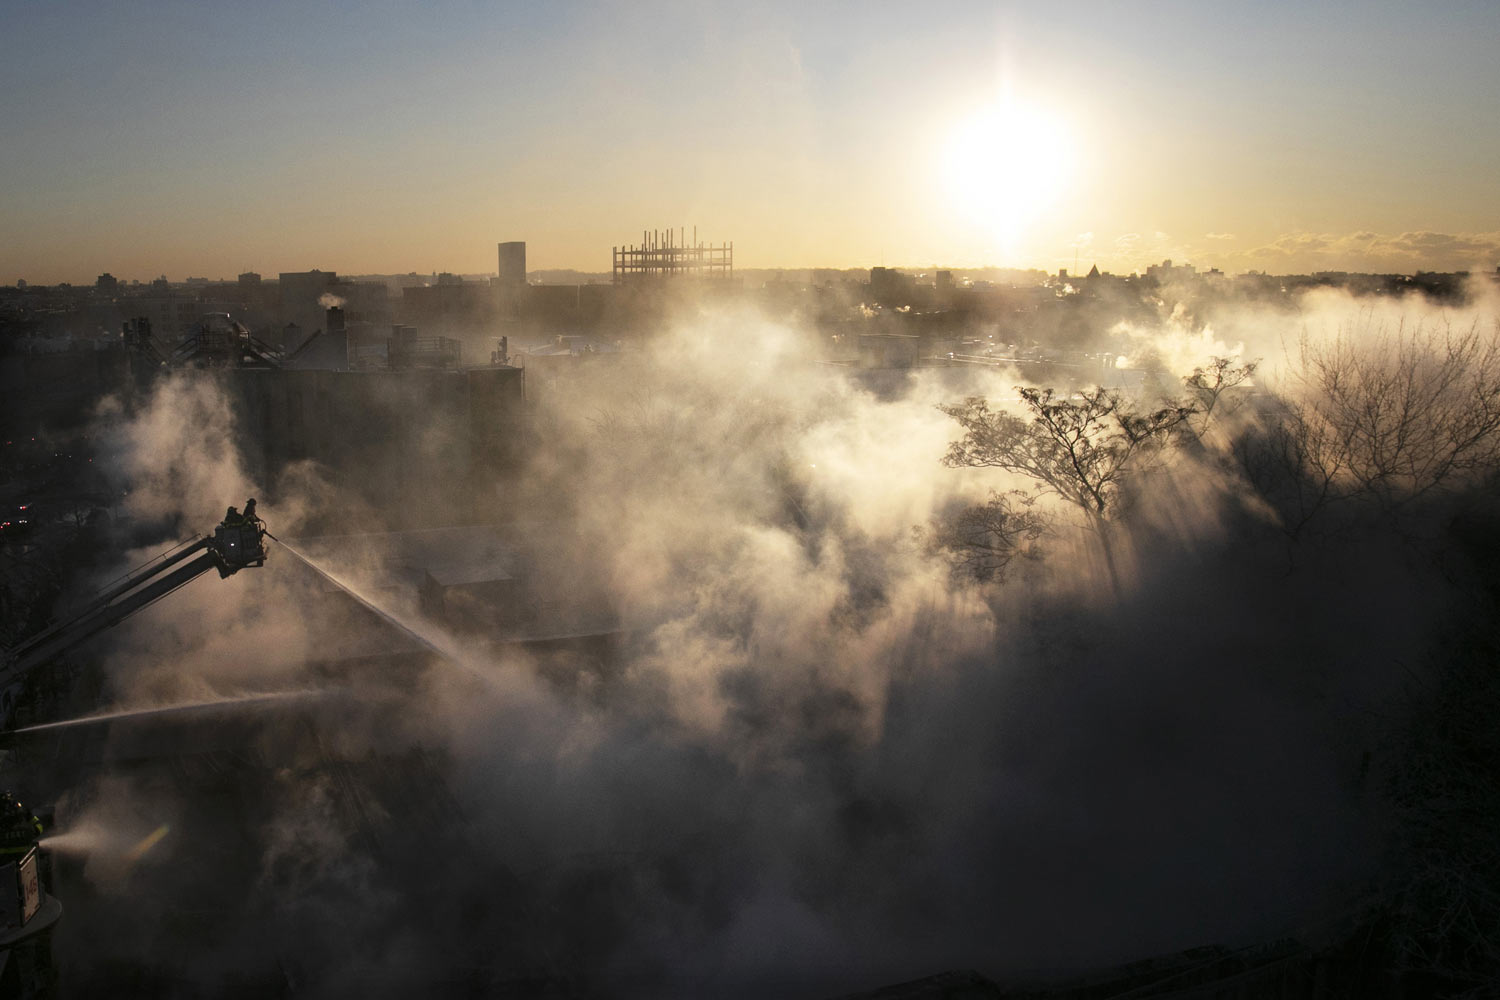 Firefighters spray water onto a burning a commercial building in the Bedford Stuyvesant neighborhood of Brooklyn, New York, on  Thursday, Jan. 31, 2019 during extremely cold temperatures in the area. (AP Photo/Mark Lennihan)